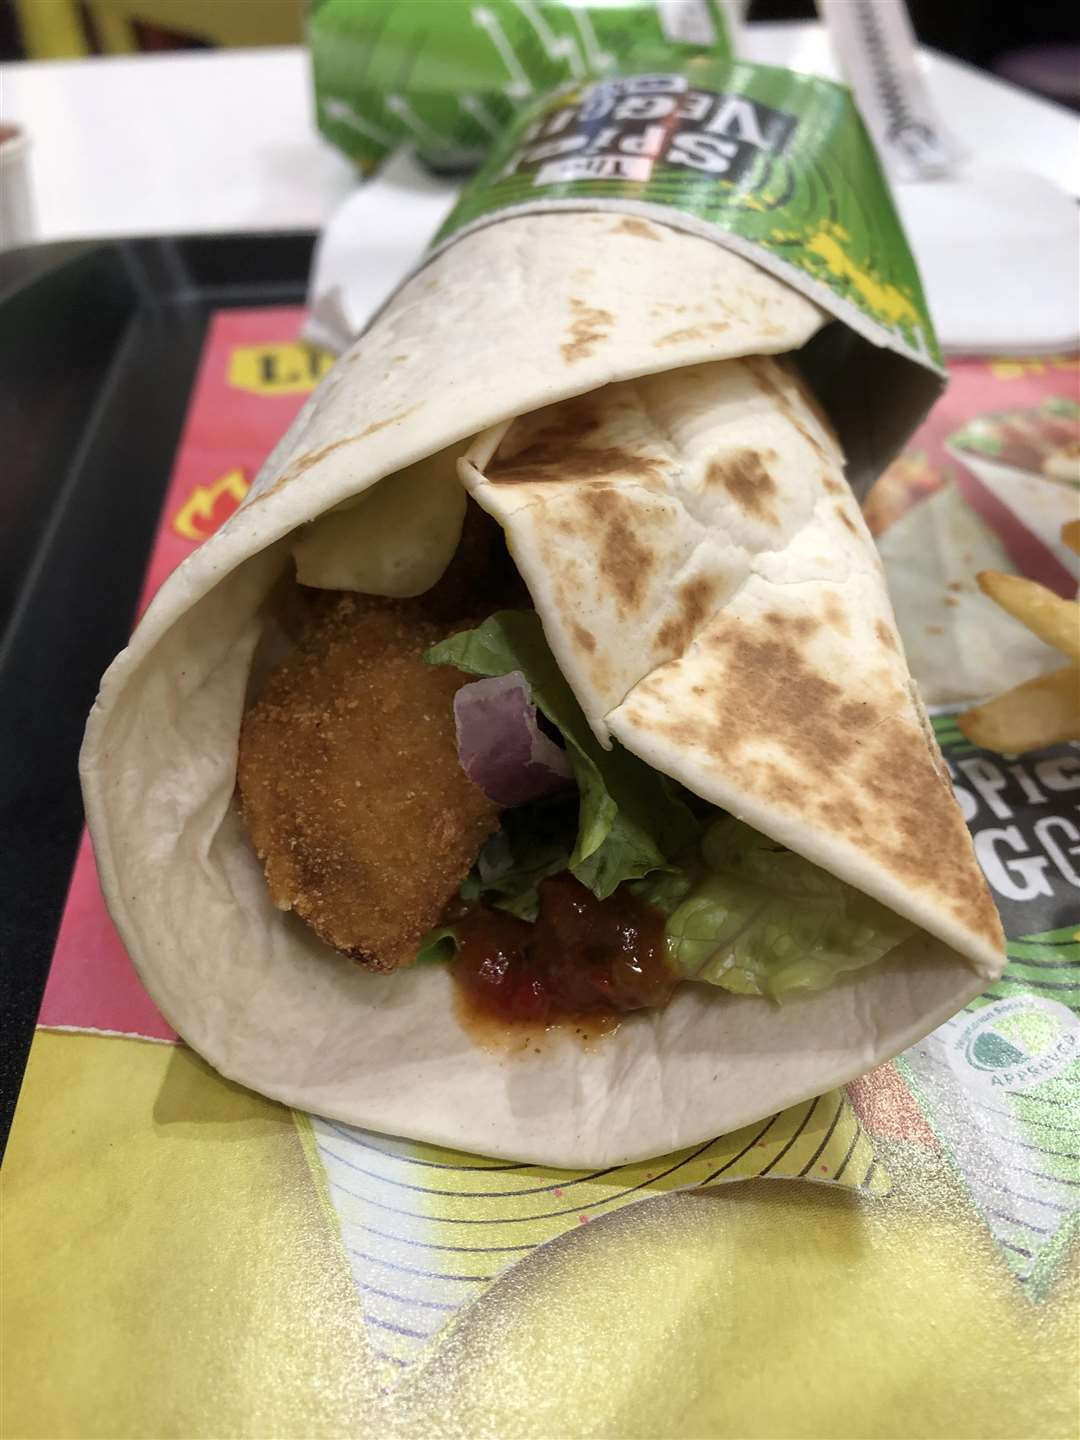 Veggie feature - the new The Spicy Veggie One wrap at McDonald's. (6369441)